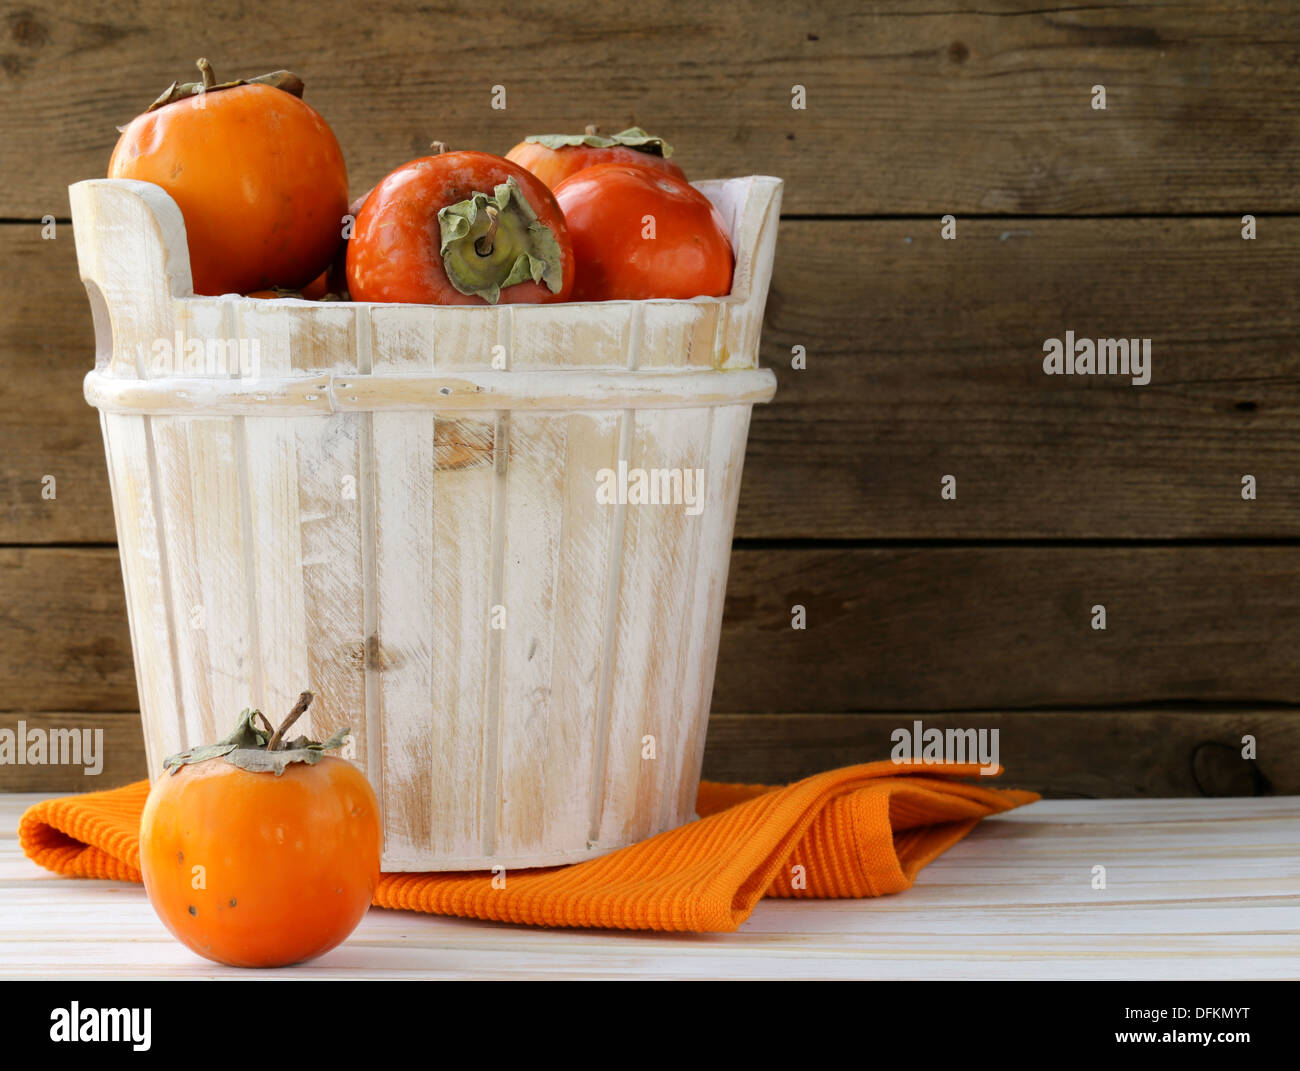 Orange ripe persimmon in a wooden table - Stock Image